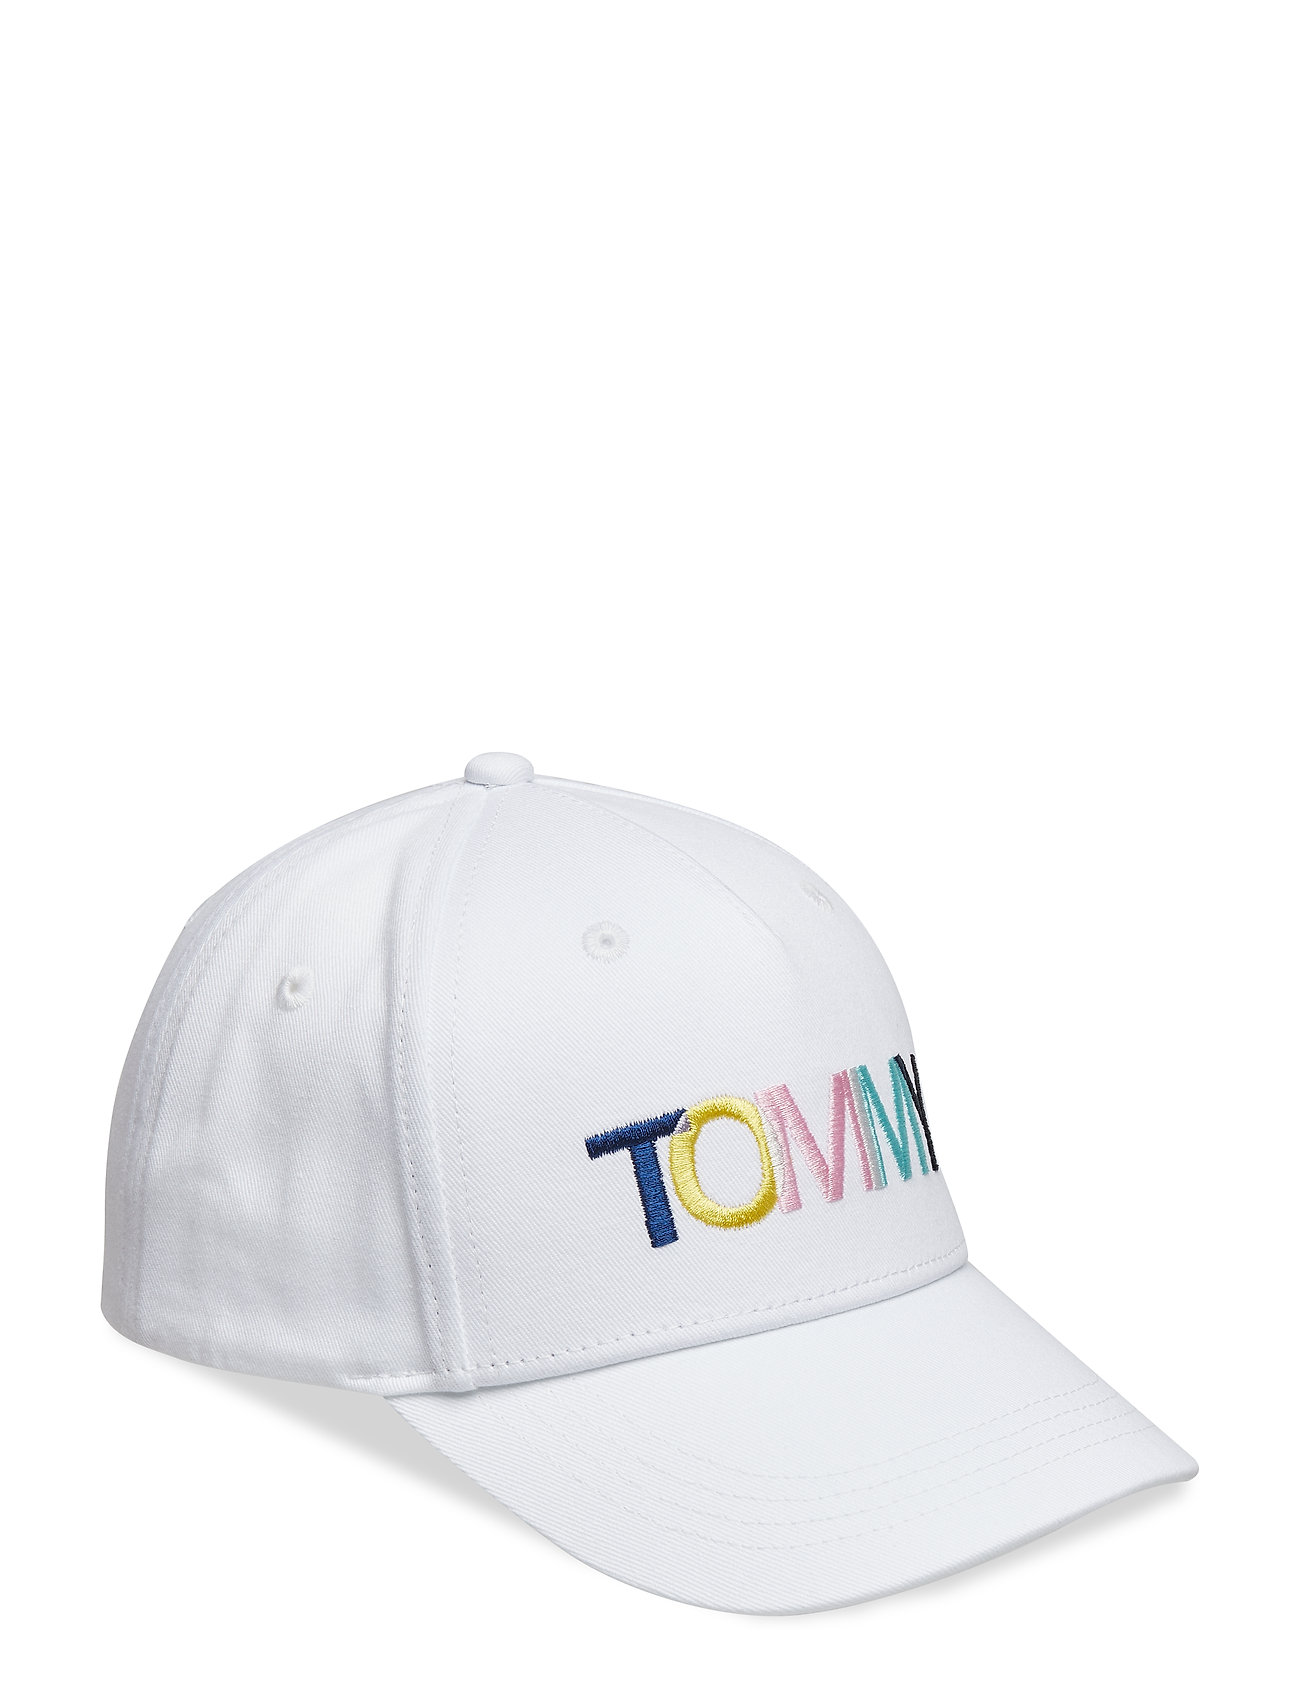 Tommy Hilfiger COLLEGE TOMMY CAP - BRIGHT WHITE